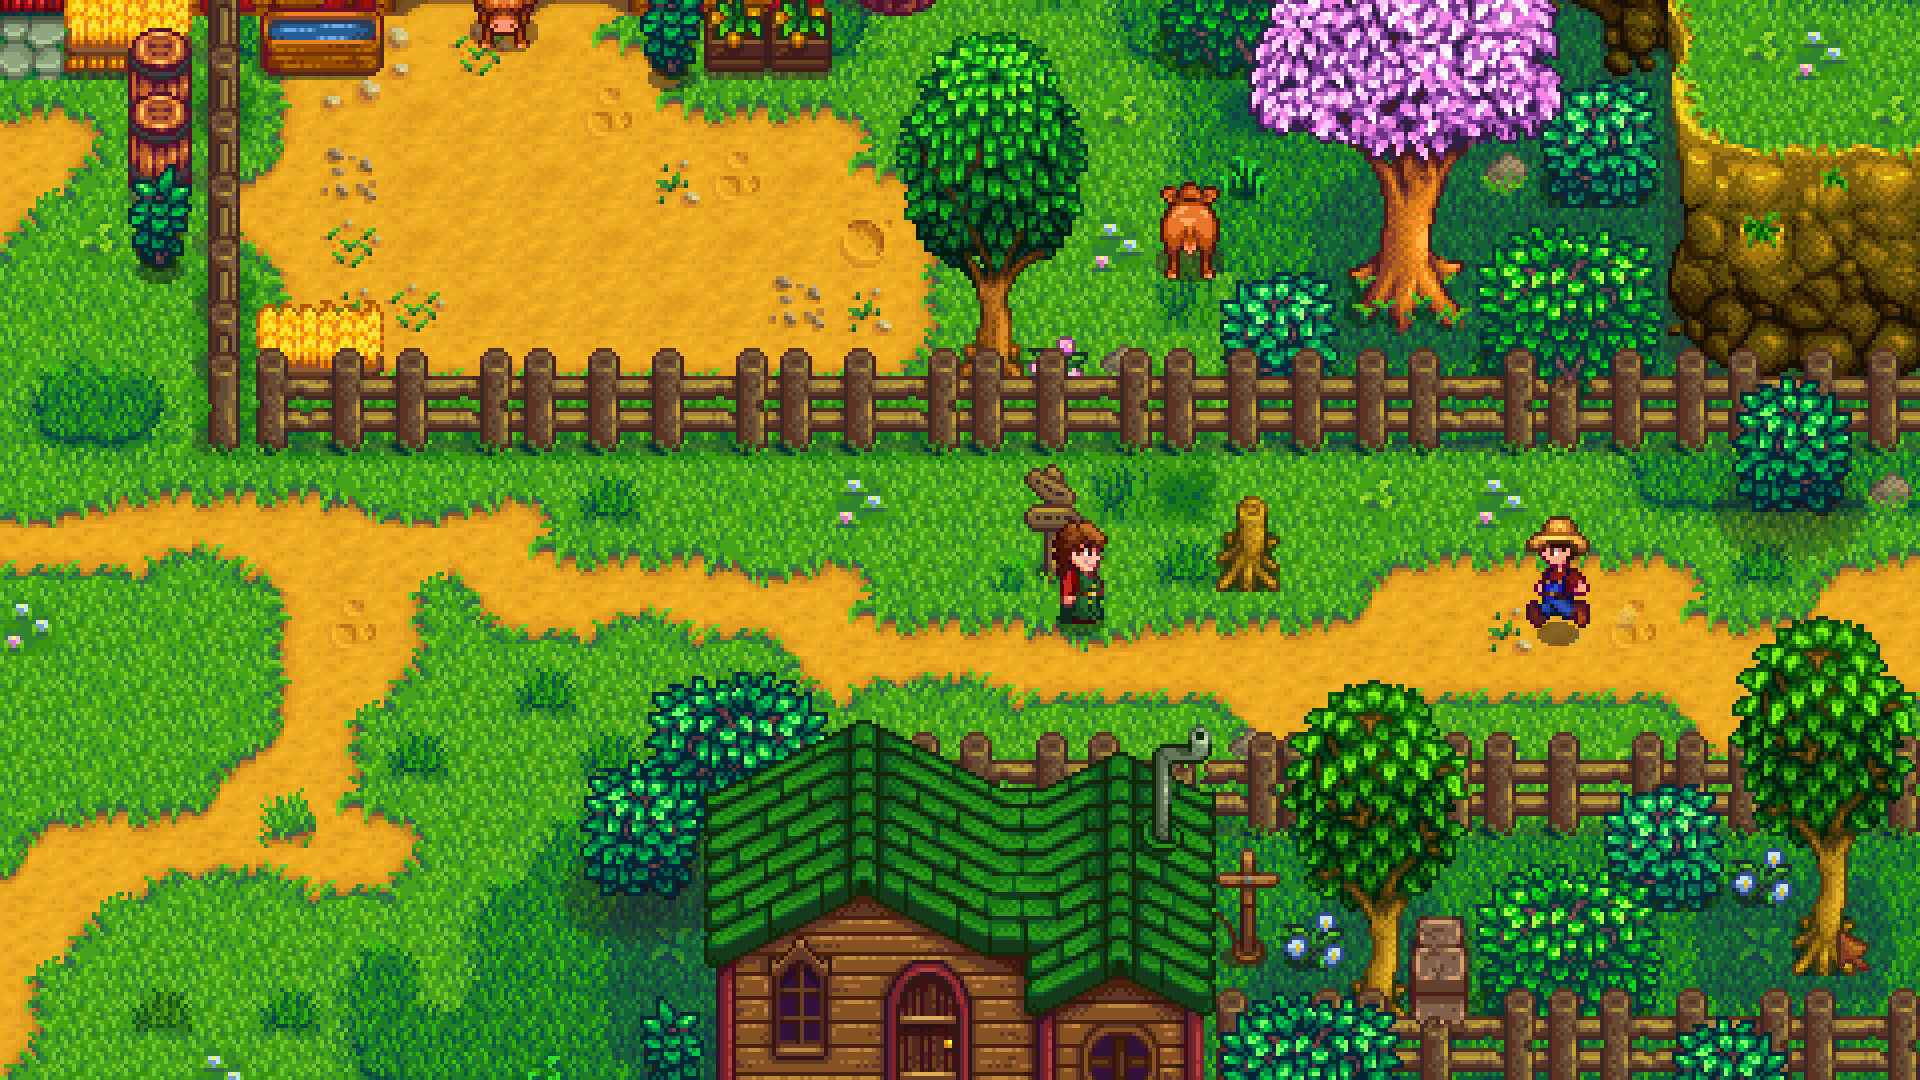 Stardew Valley (PC) Review